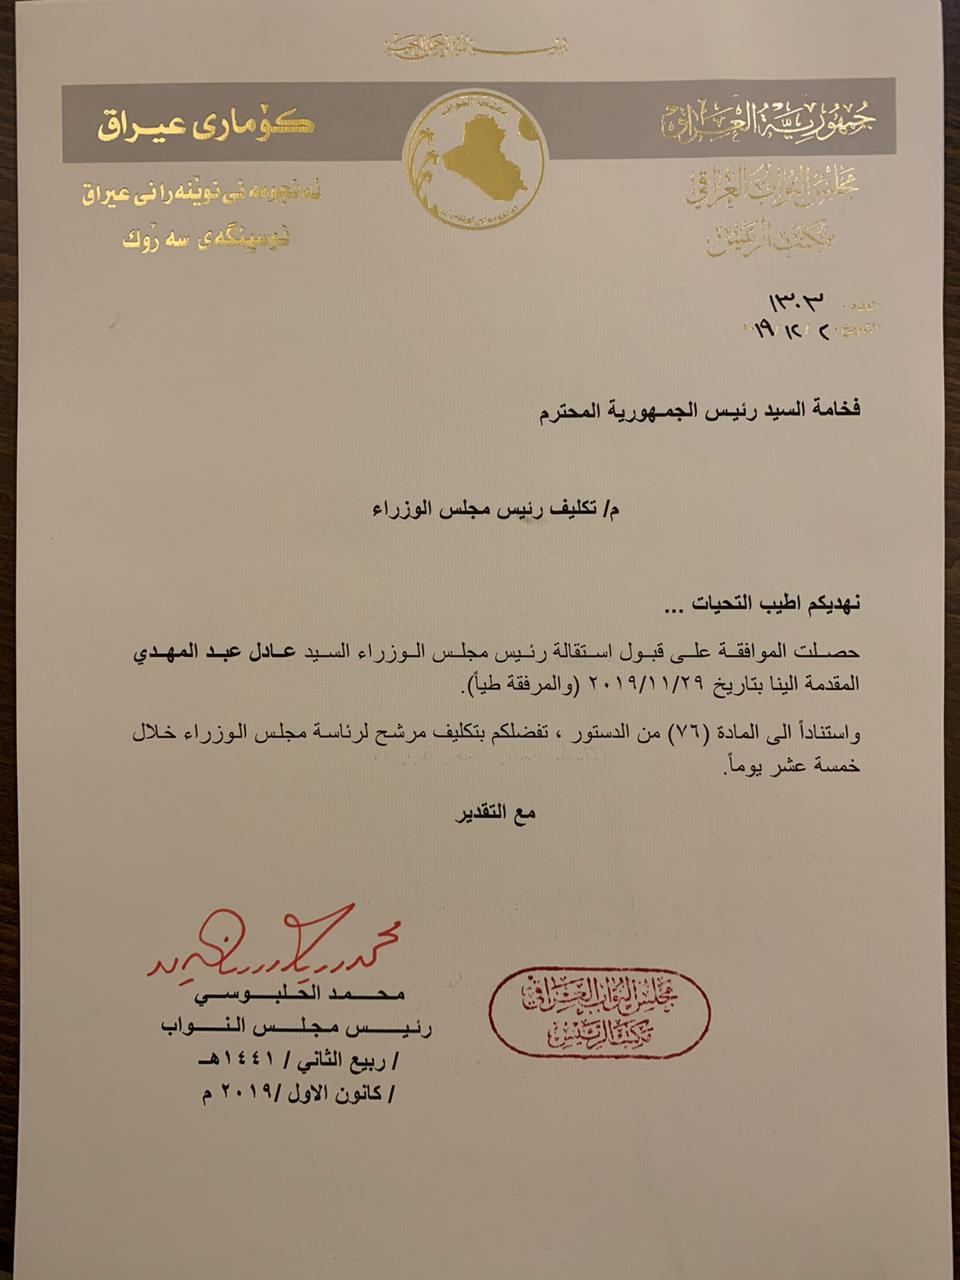 In the document .. Halbusi addresses the President of the Republic to assign a candidate for prime minister within 15 days Image